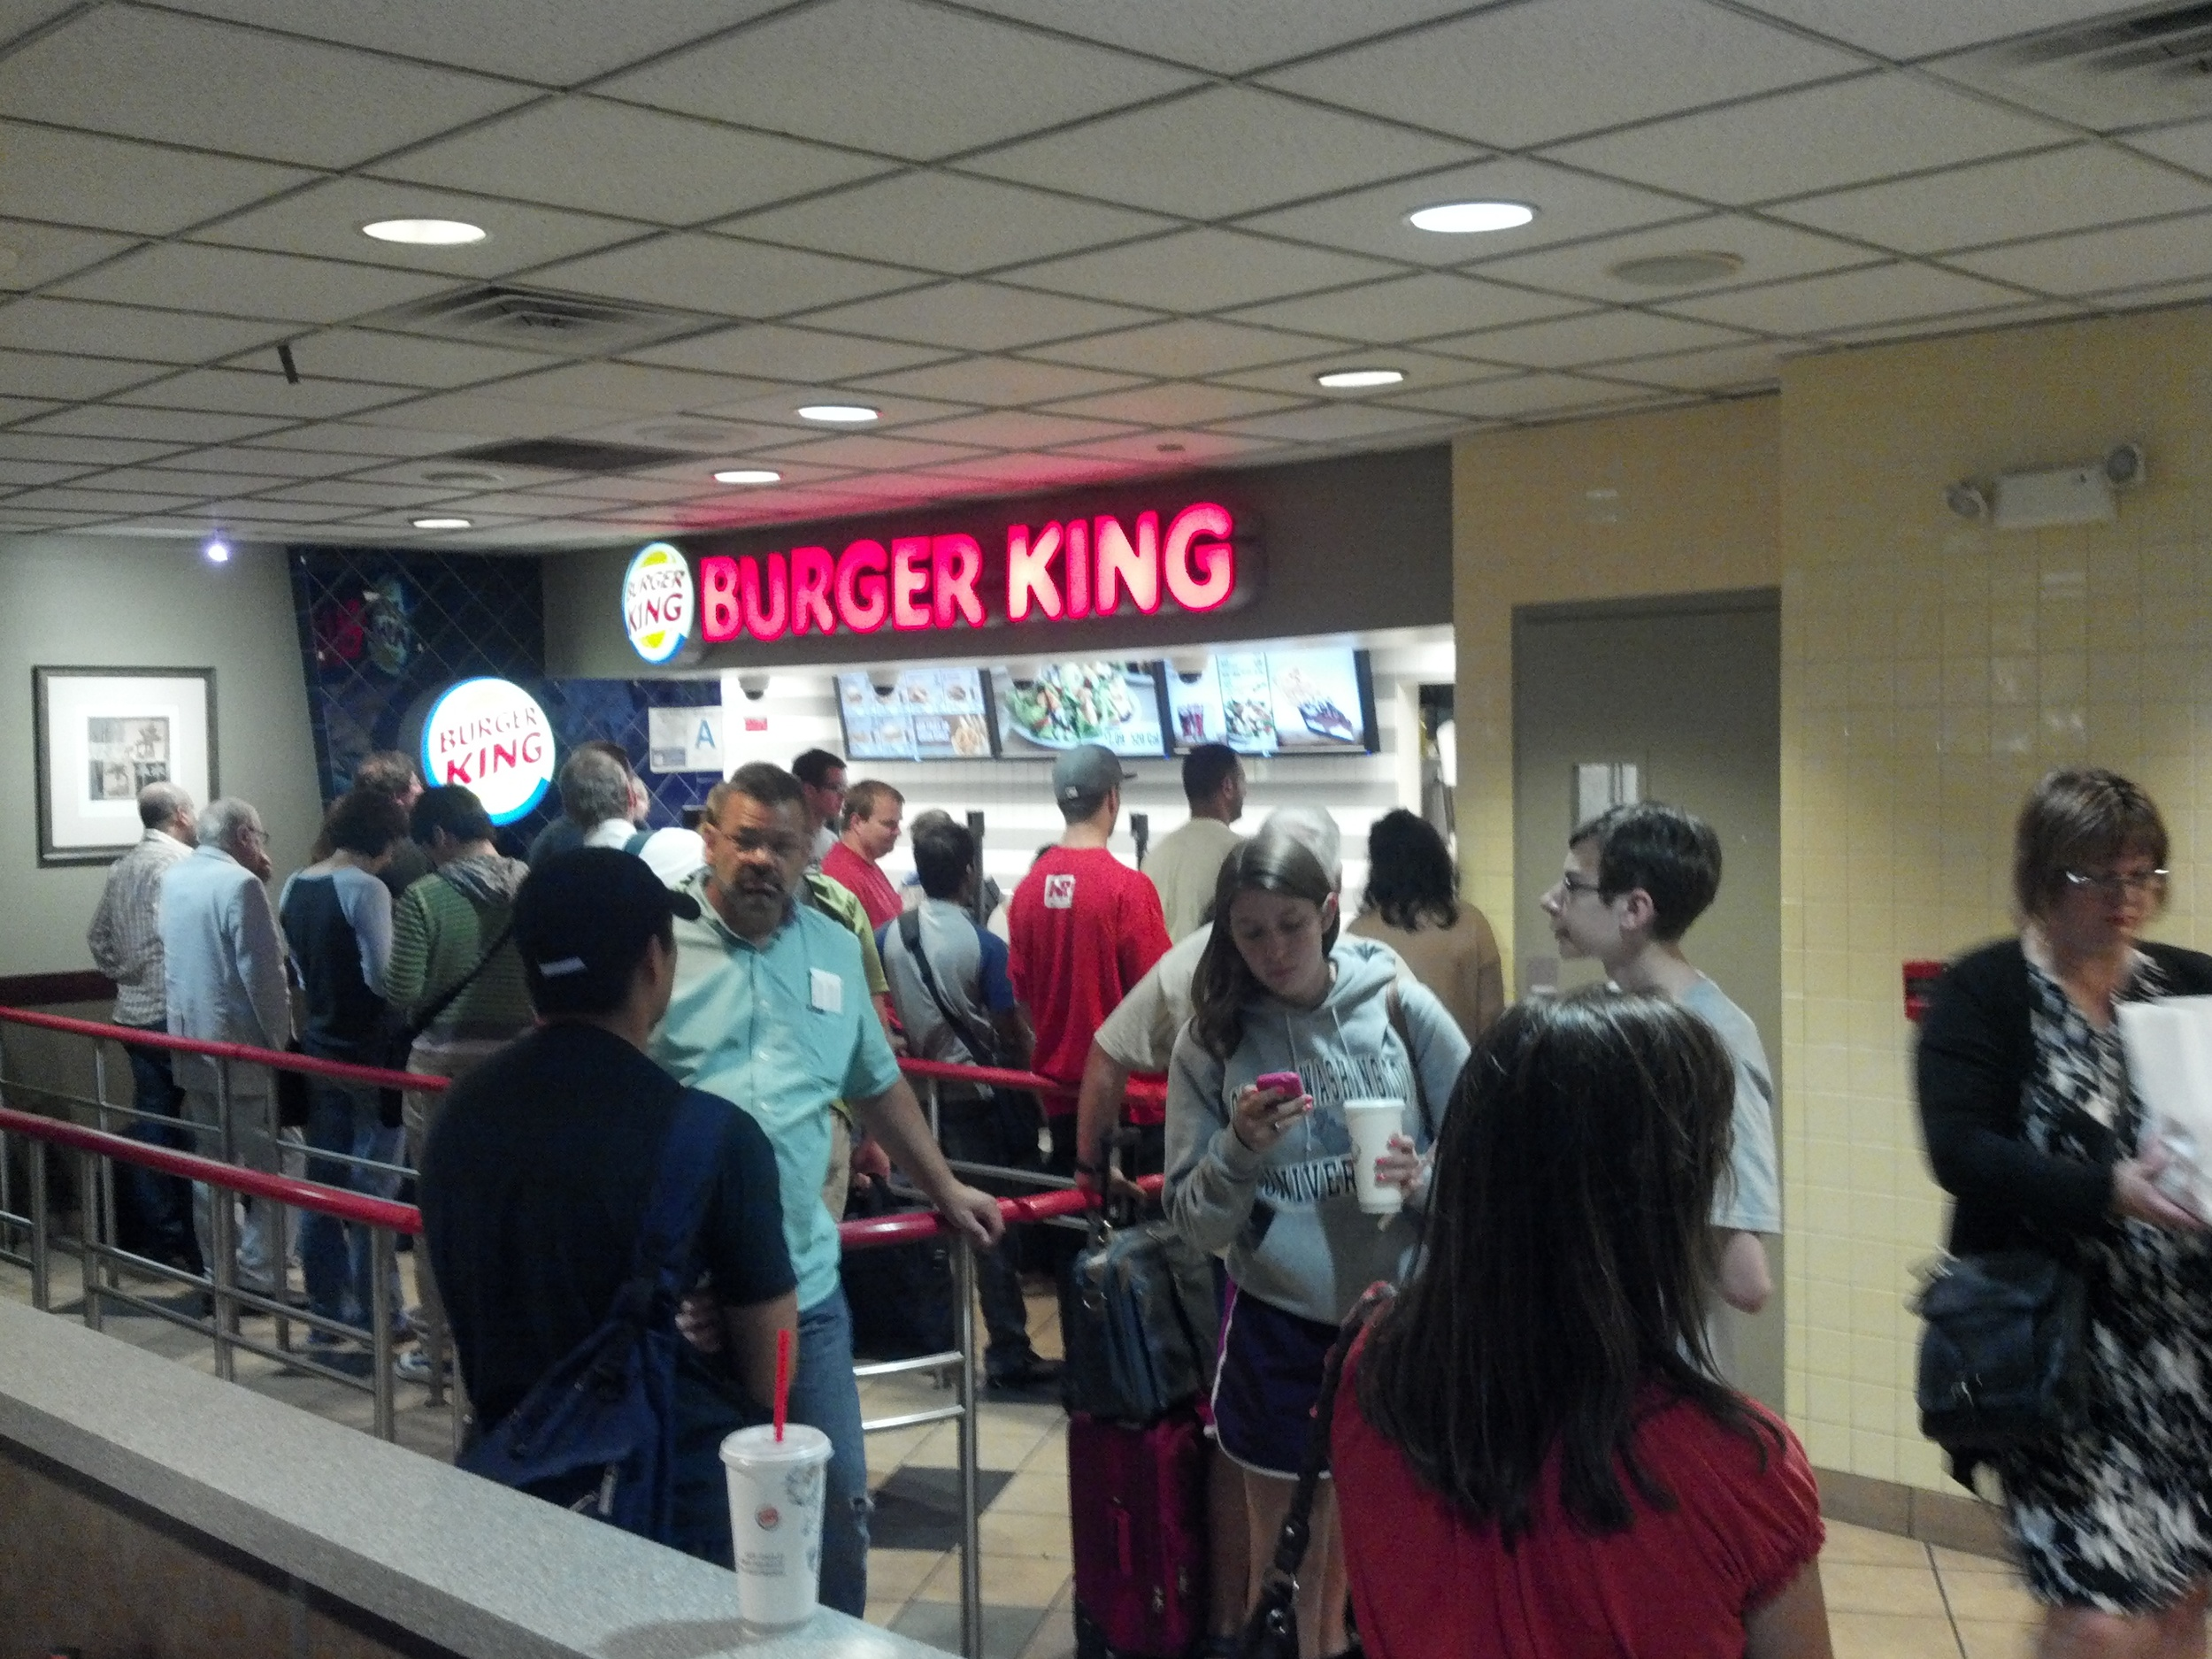 The Burger King Wait